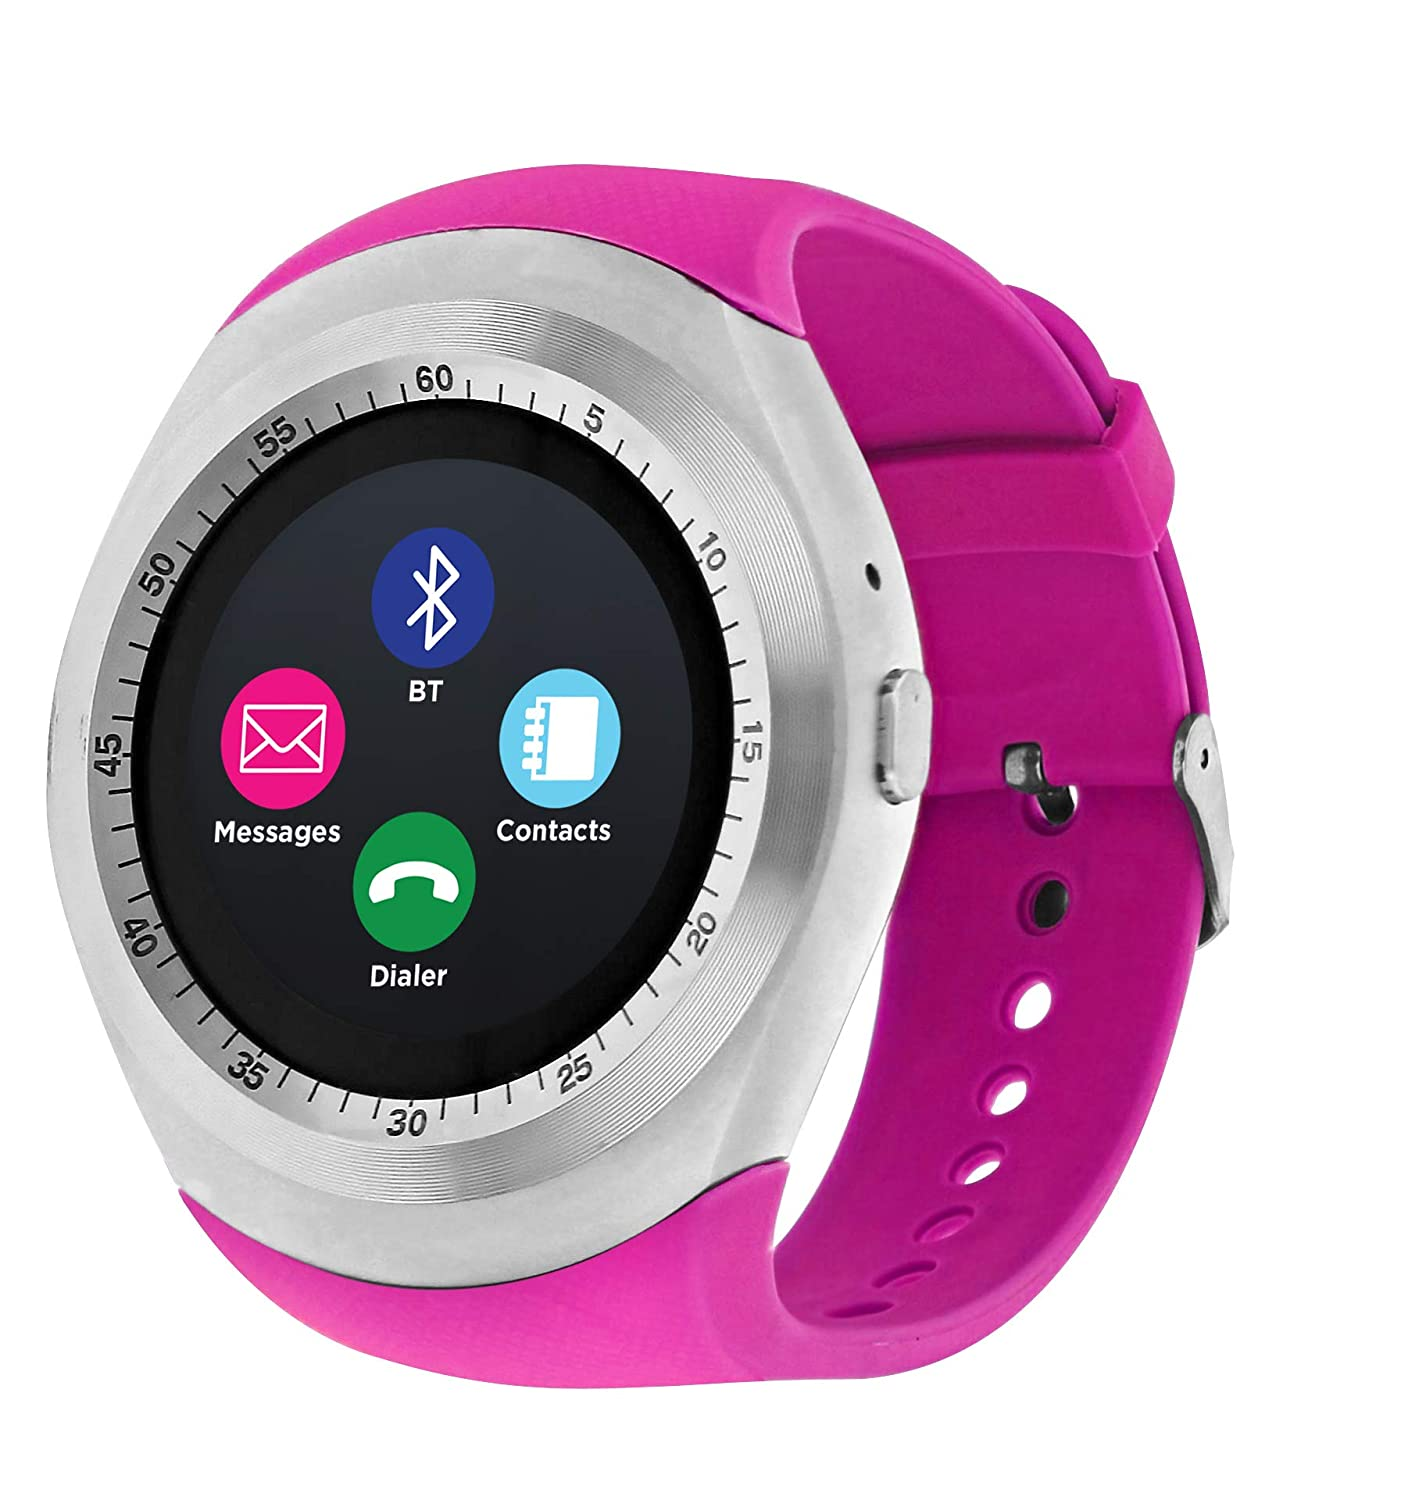 iTOUCH Curve Bluetooth Smart Watch Phone and Fitness Activity Tracker Touch Screen Smart Wrist Watch, Silver/Fuchsia